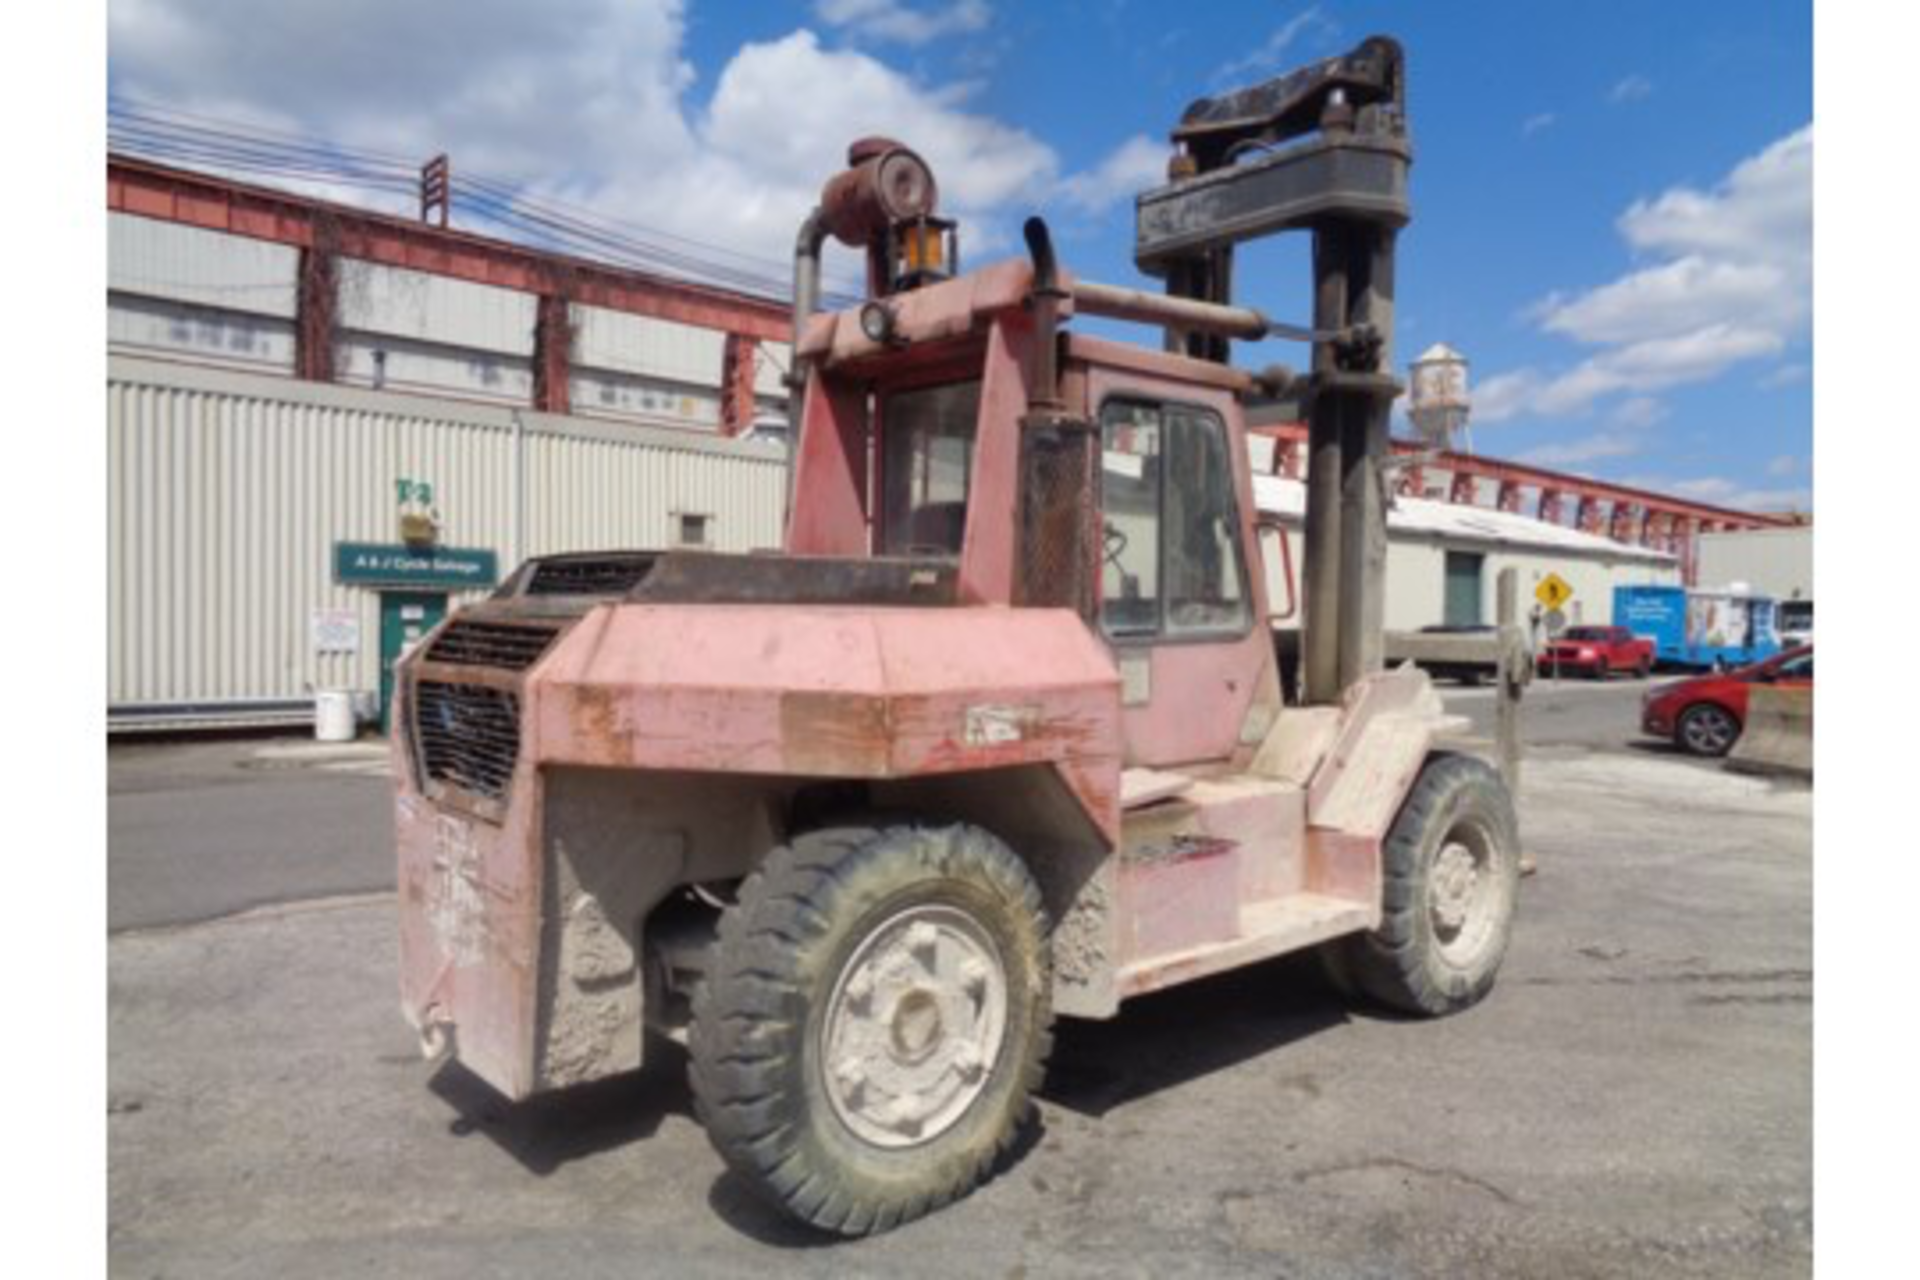 Taylor TE200S 20,000lb Forklift - Image 3 of 10